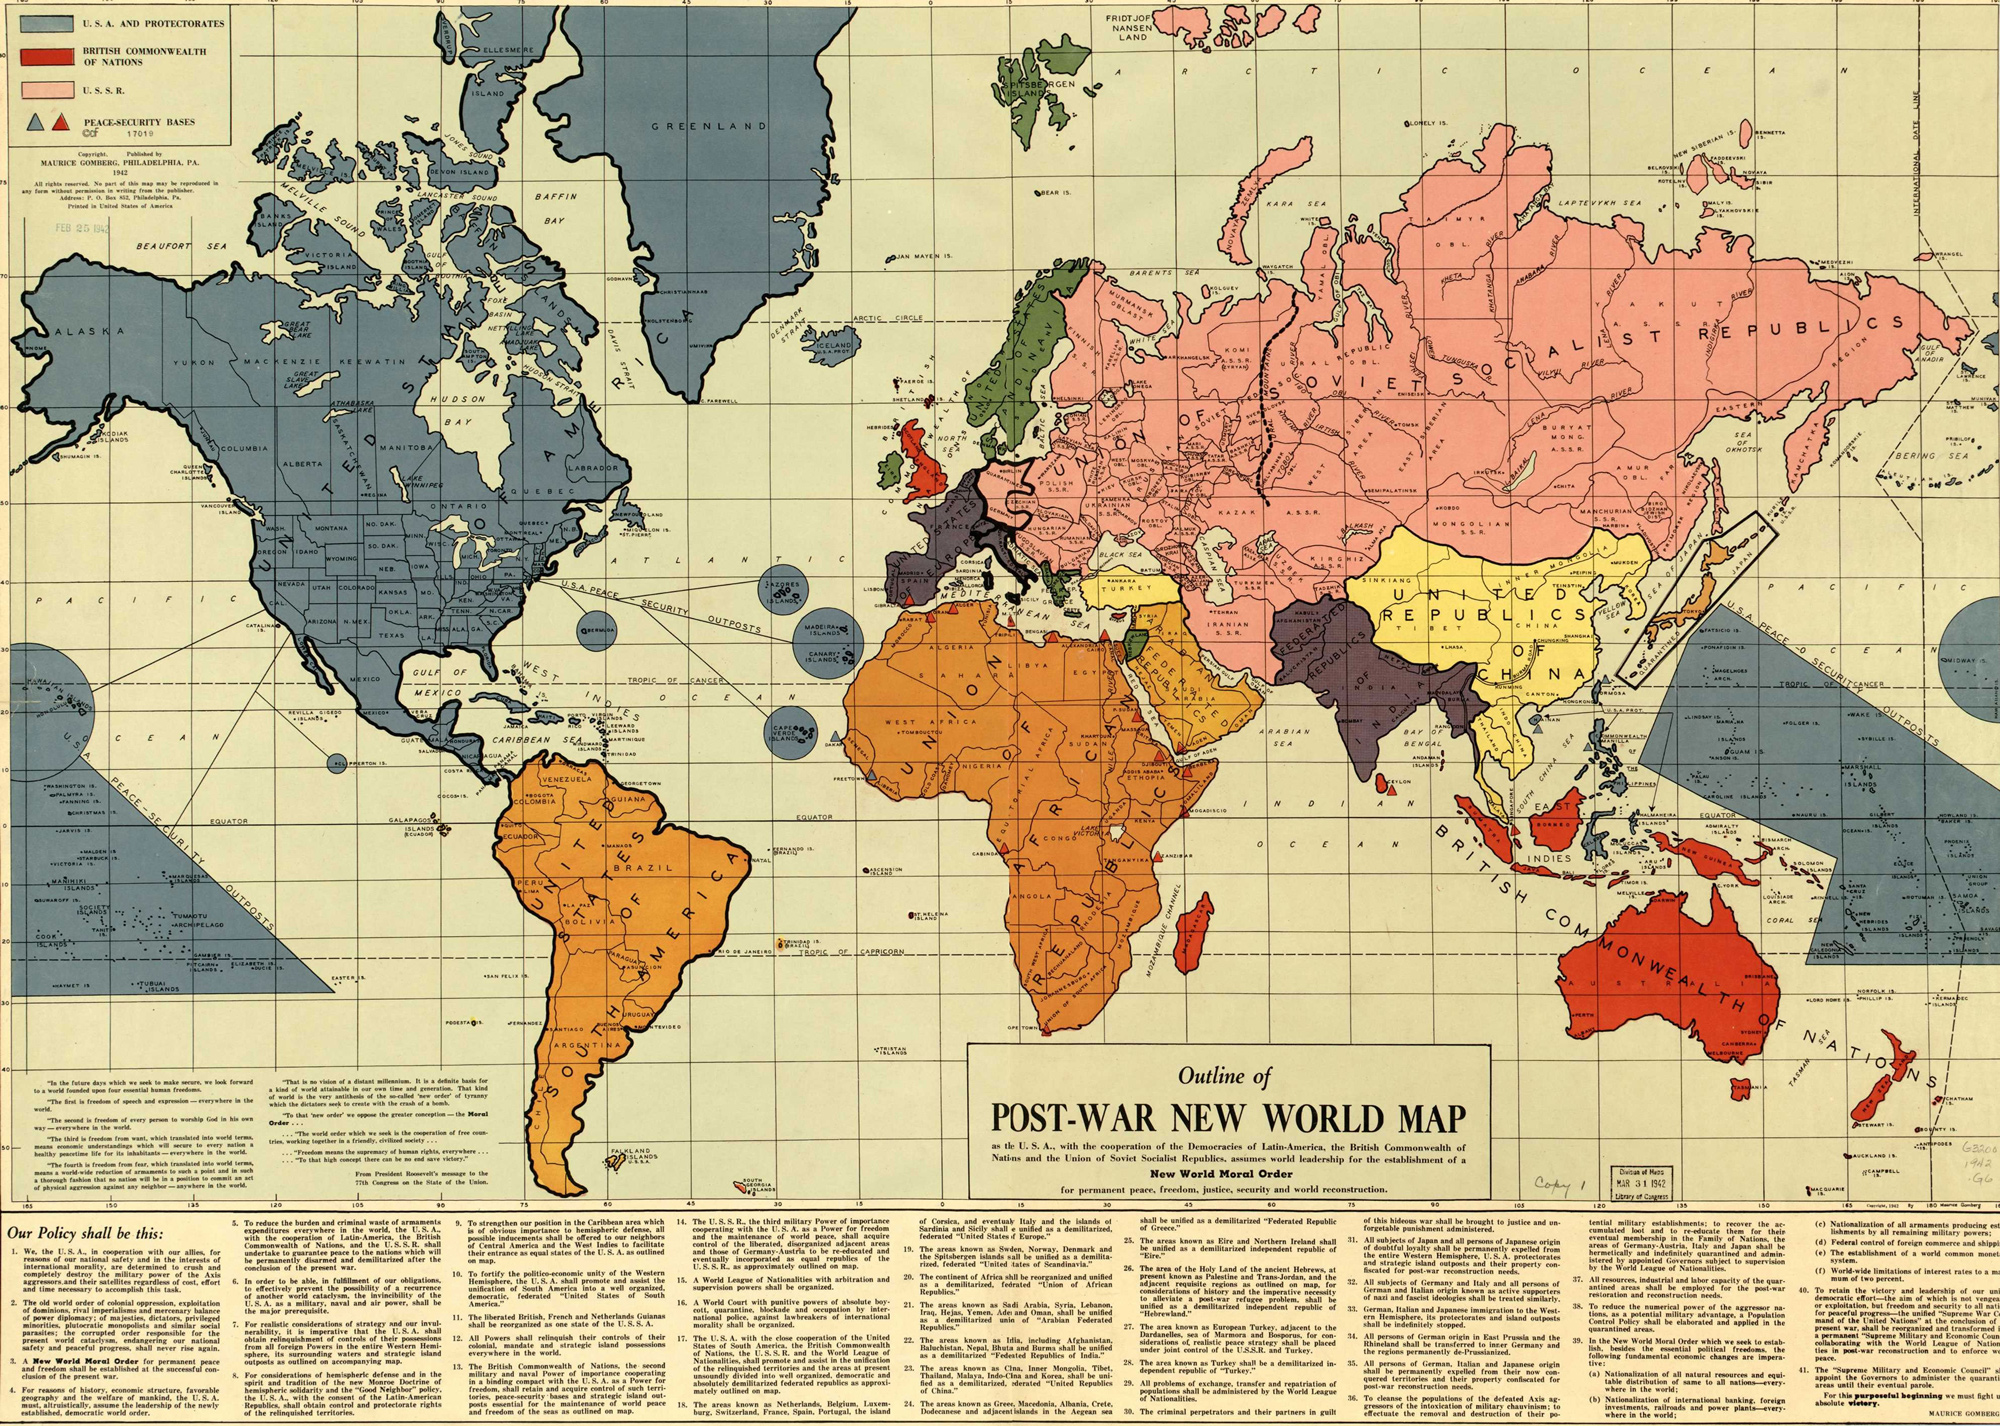 Outline of Post-War New World Map  (Maps C.49.e.56)